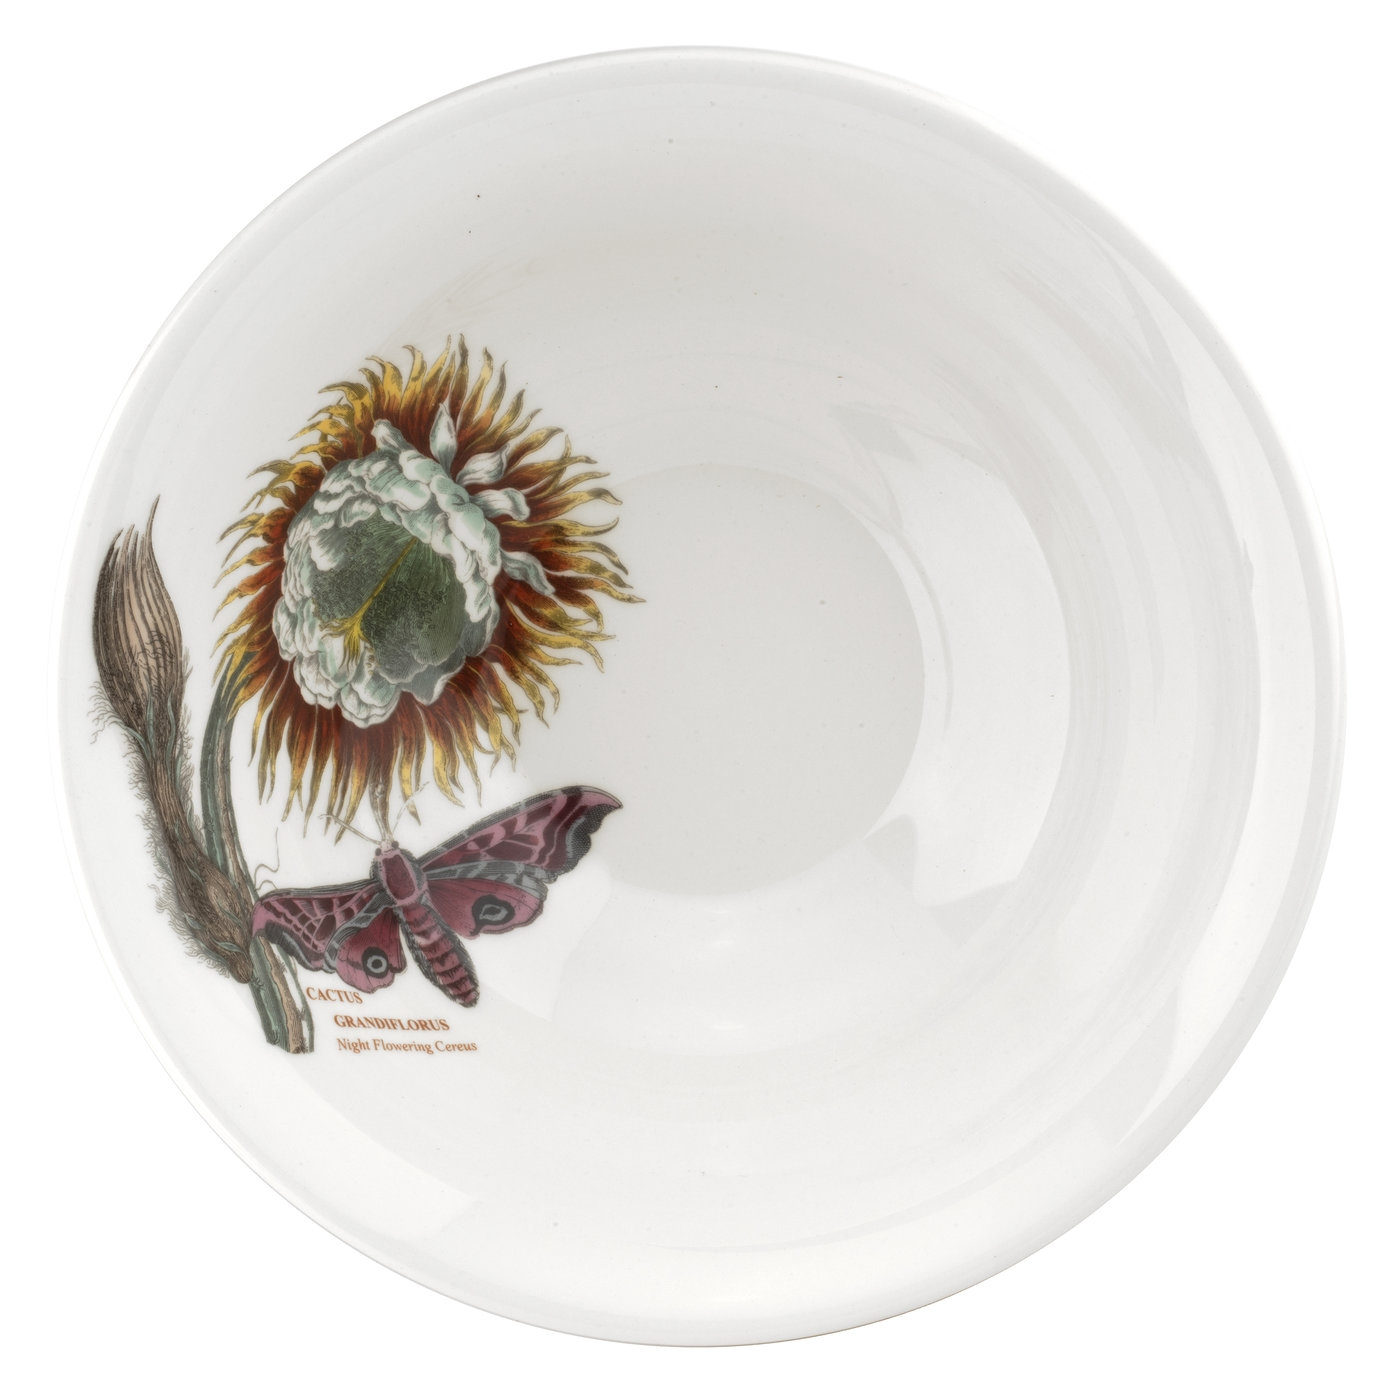 Portmeirion Botanic Garden Basin Bowl 11 inches image number 0